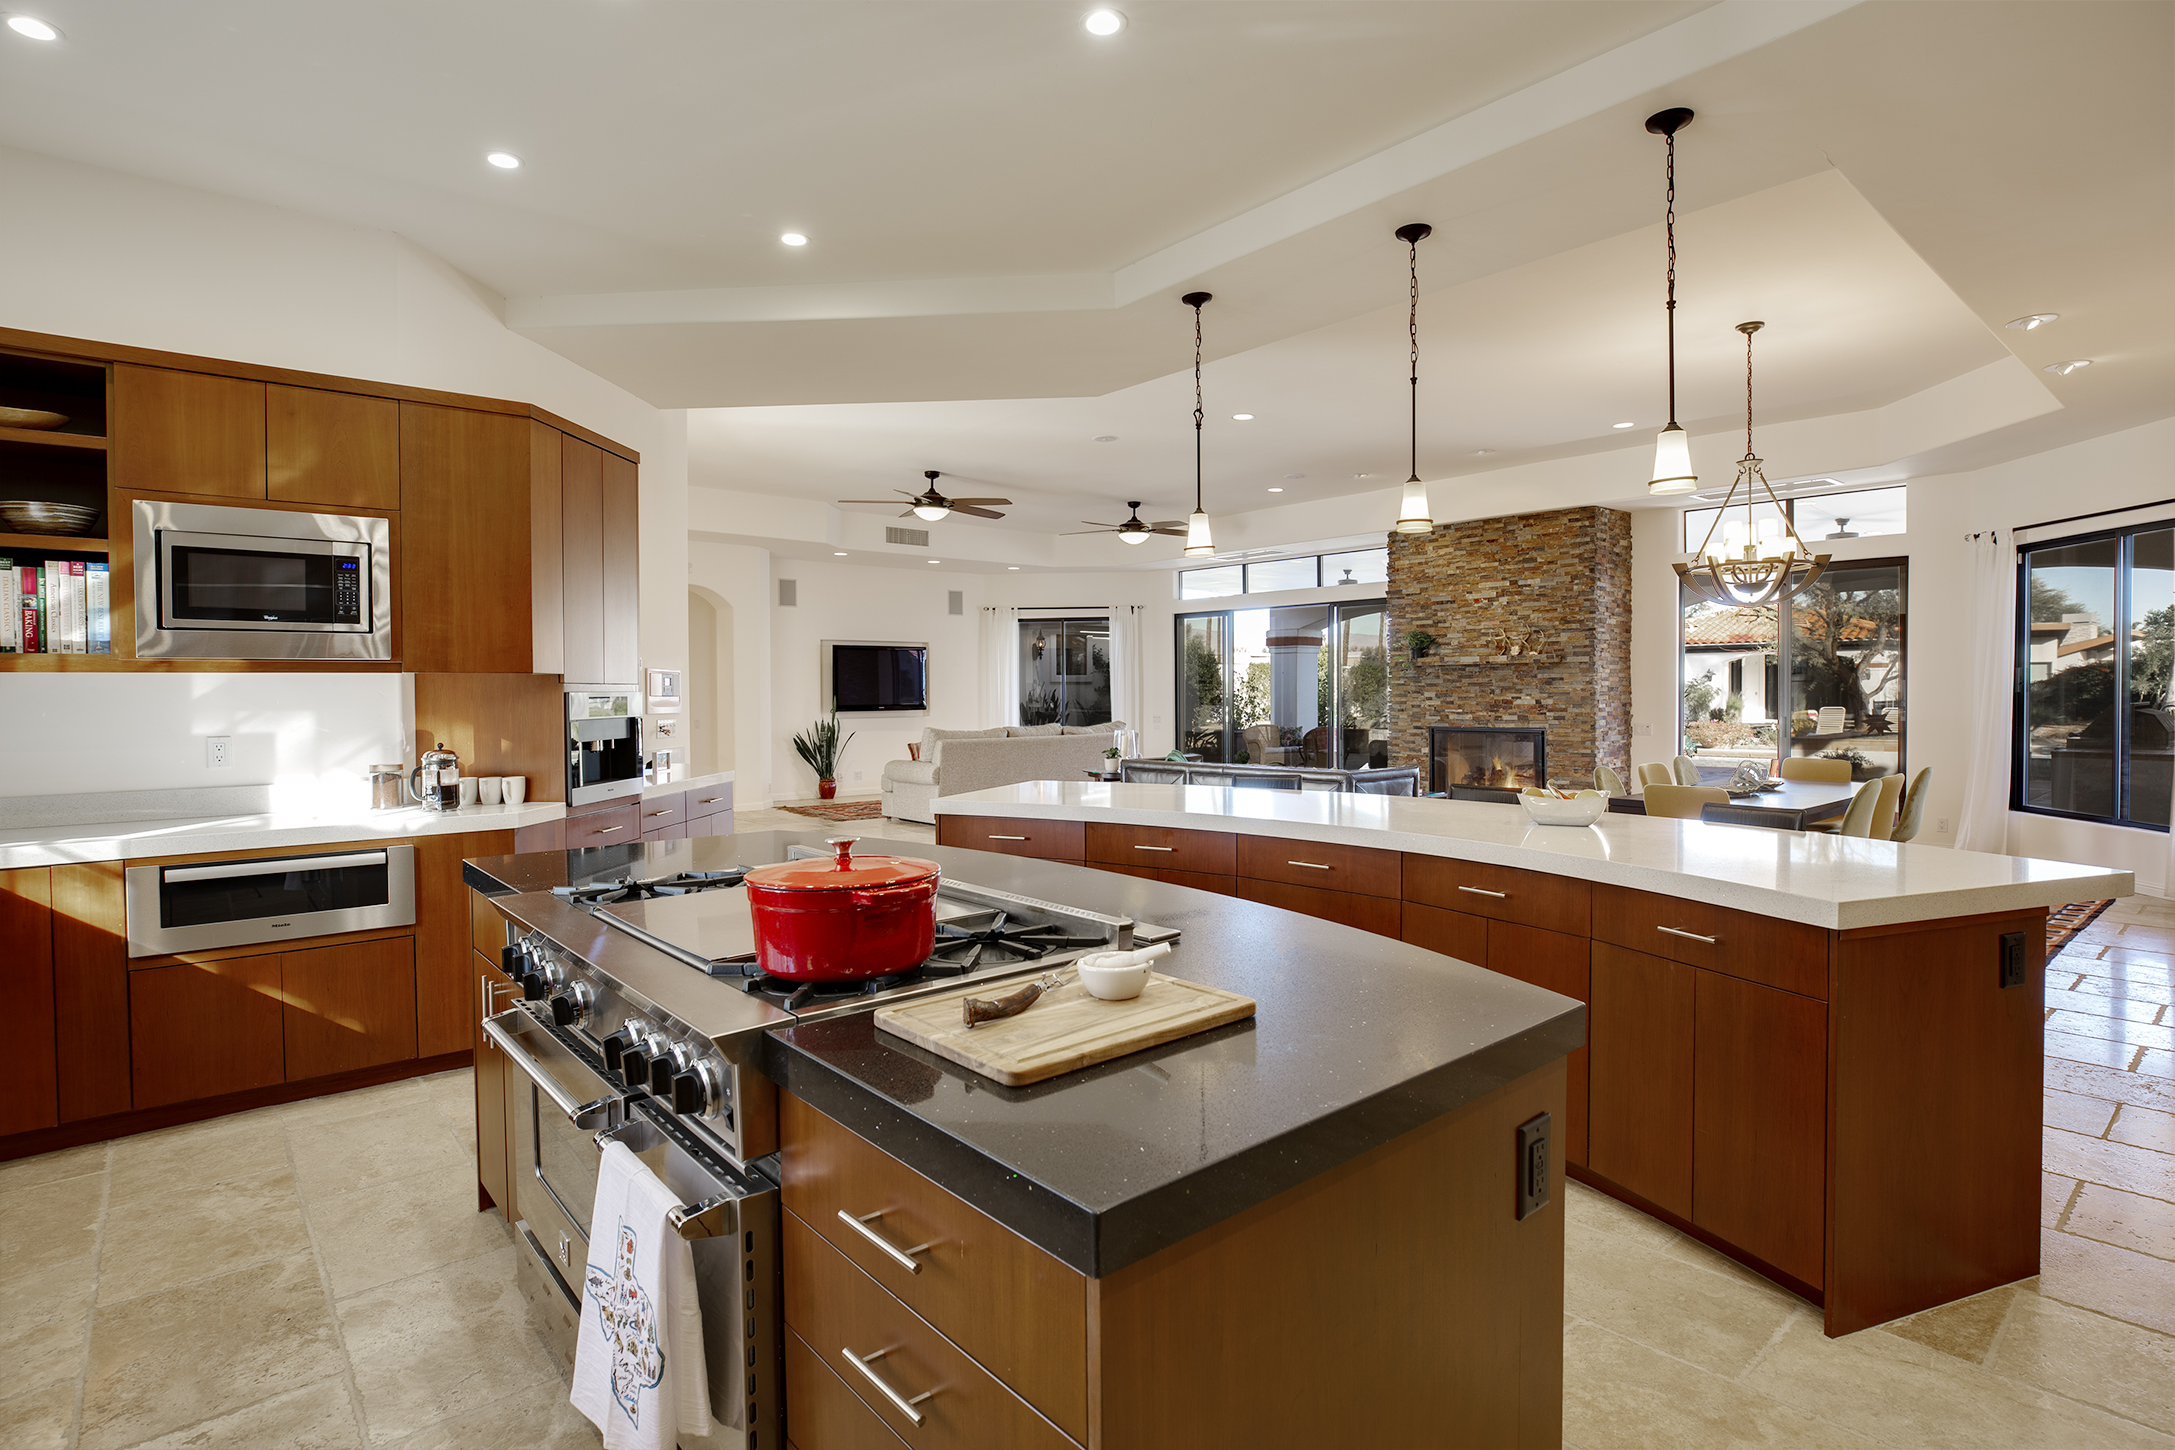 """39100 Vista Dunes Rd, Rancho Mirage. 1 + acre site, walled and gated. No HOA dues or restrictions. Owned solar panels. 4 beds, 6 baths, casita, """"bonus"""" studio space. gourmet kitchen. $1,786,000"""